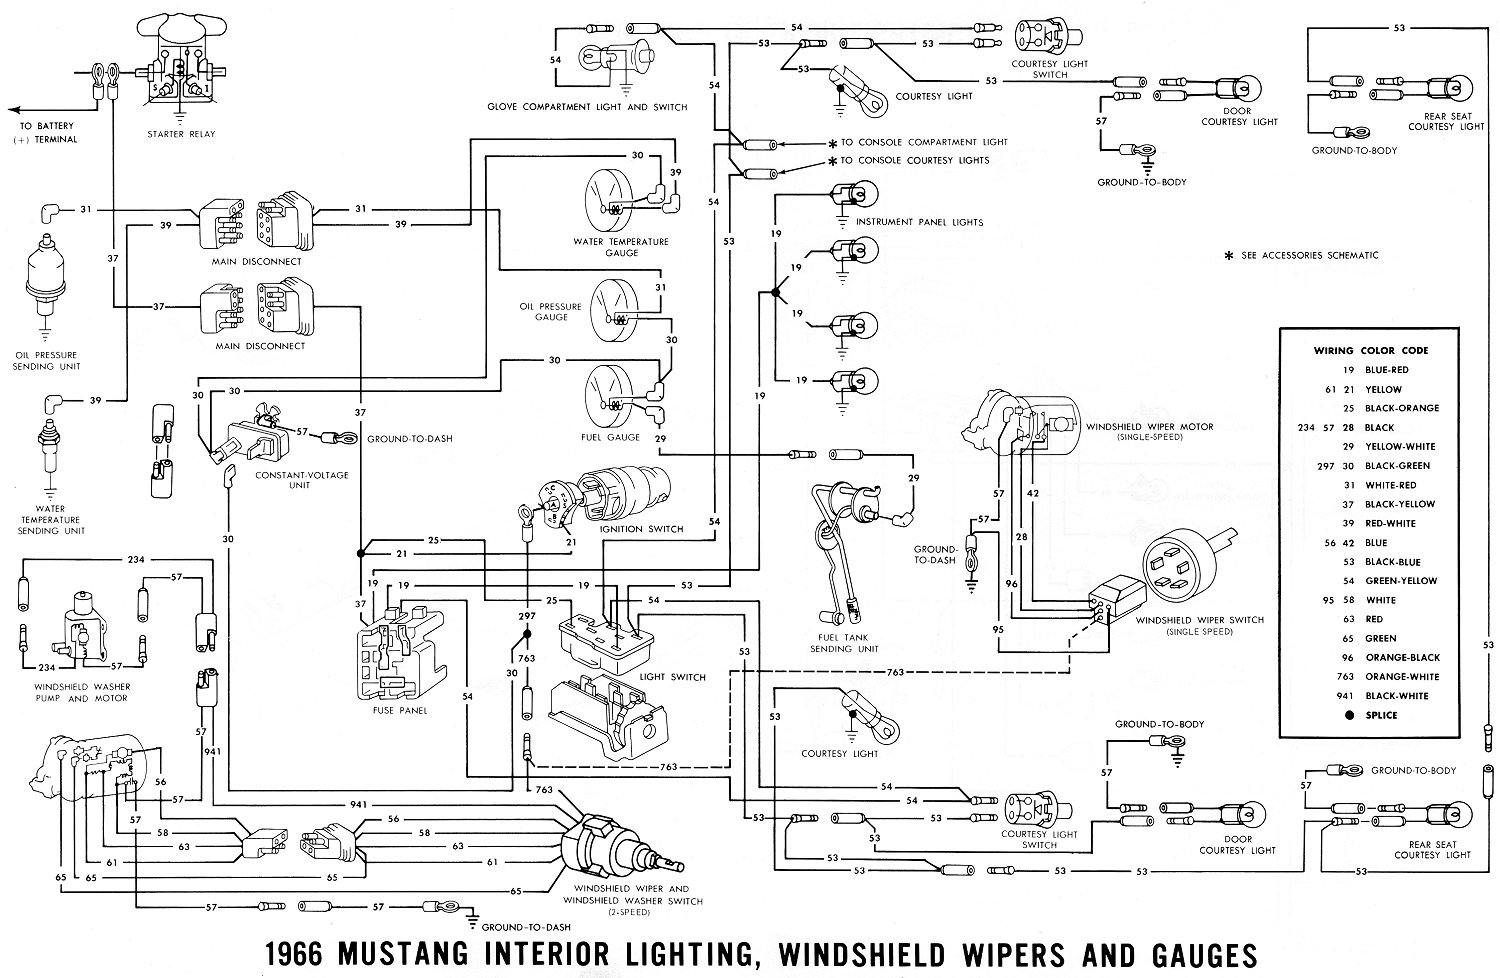 66inter1 1966 mustang wiring diagrams average joe restoration 68 mustang fuse box diagram at honlapkeszites.co